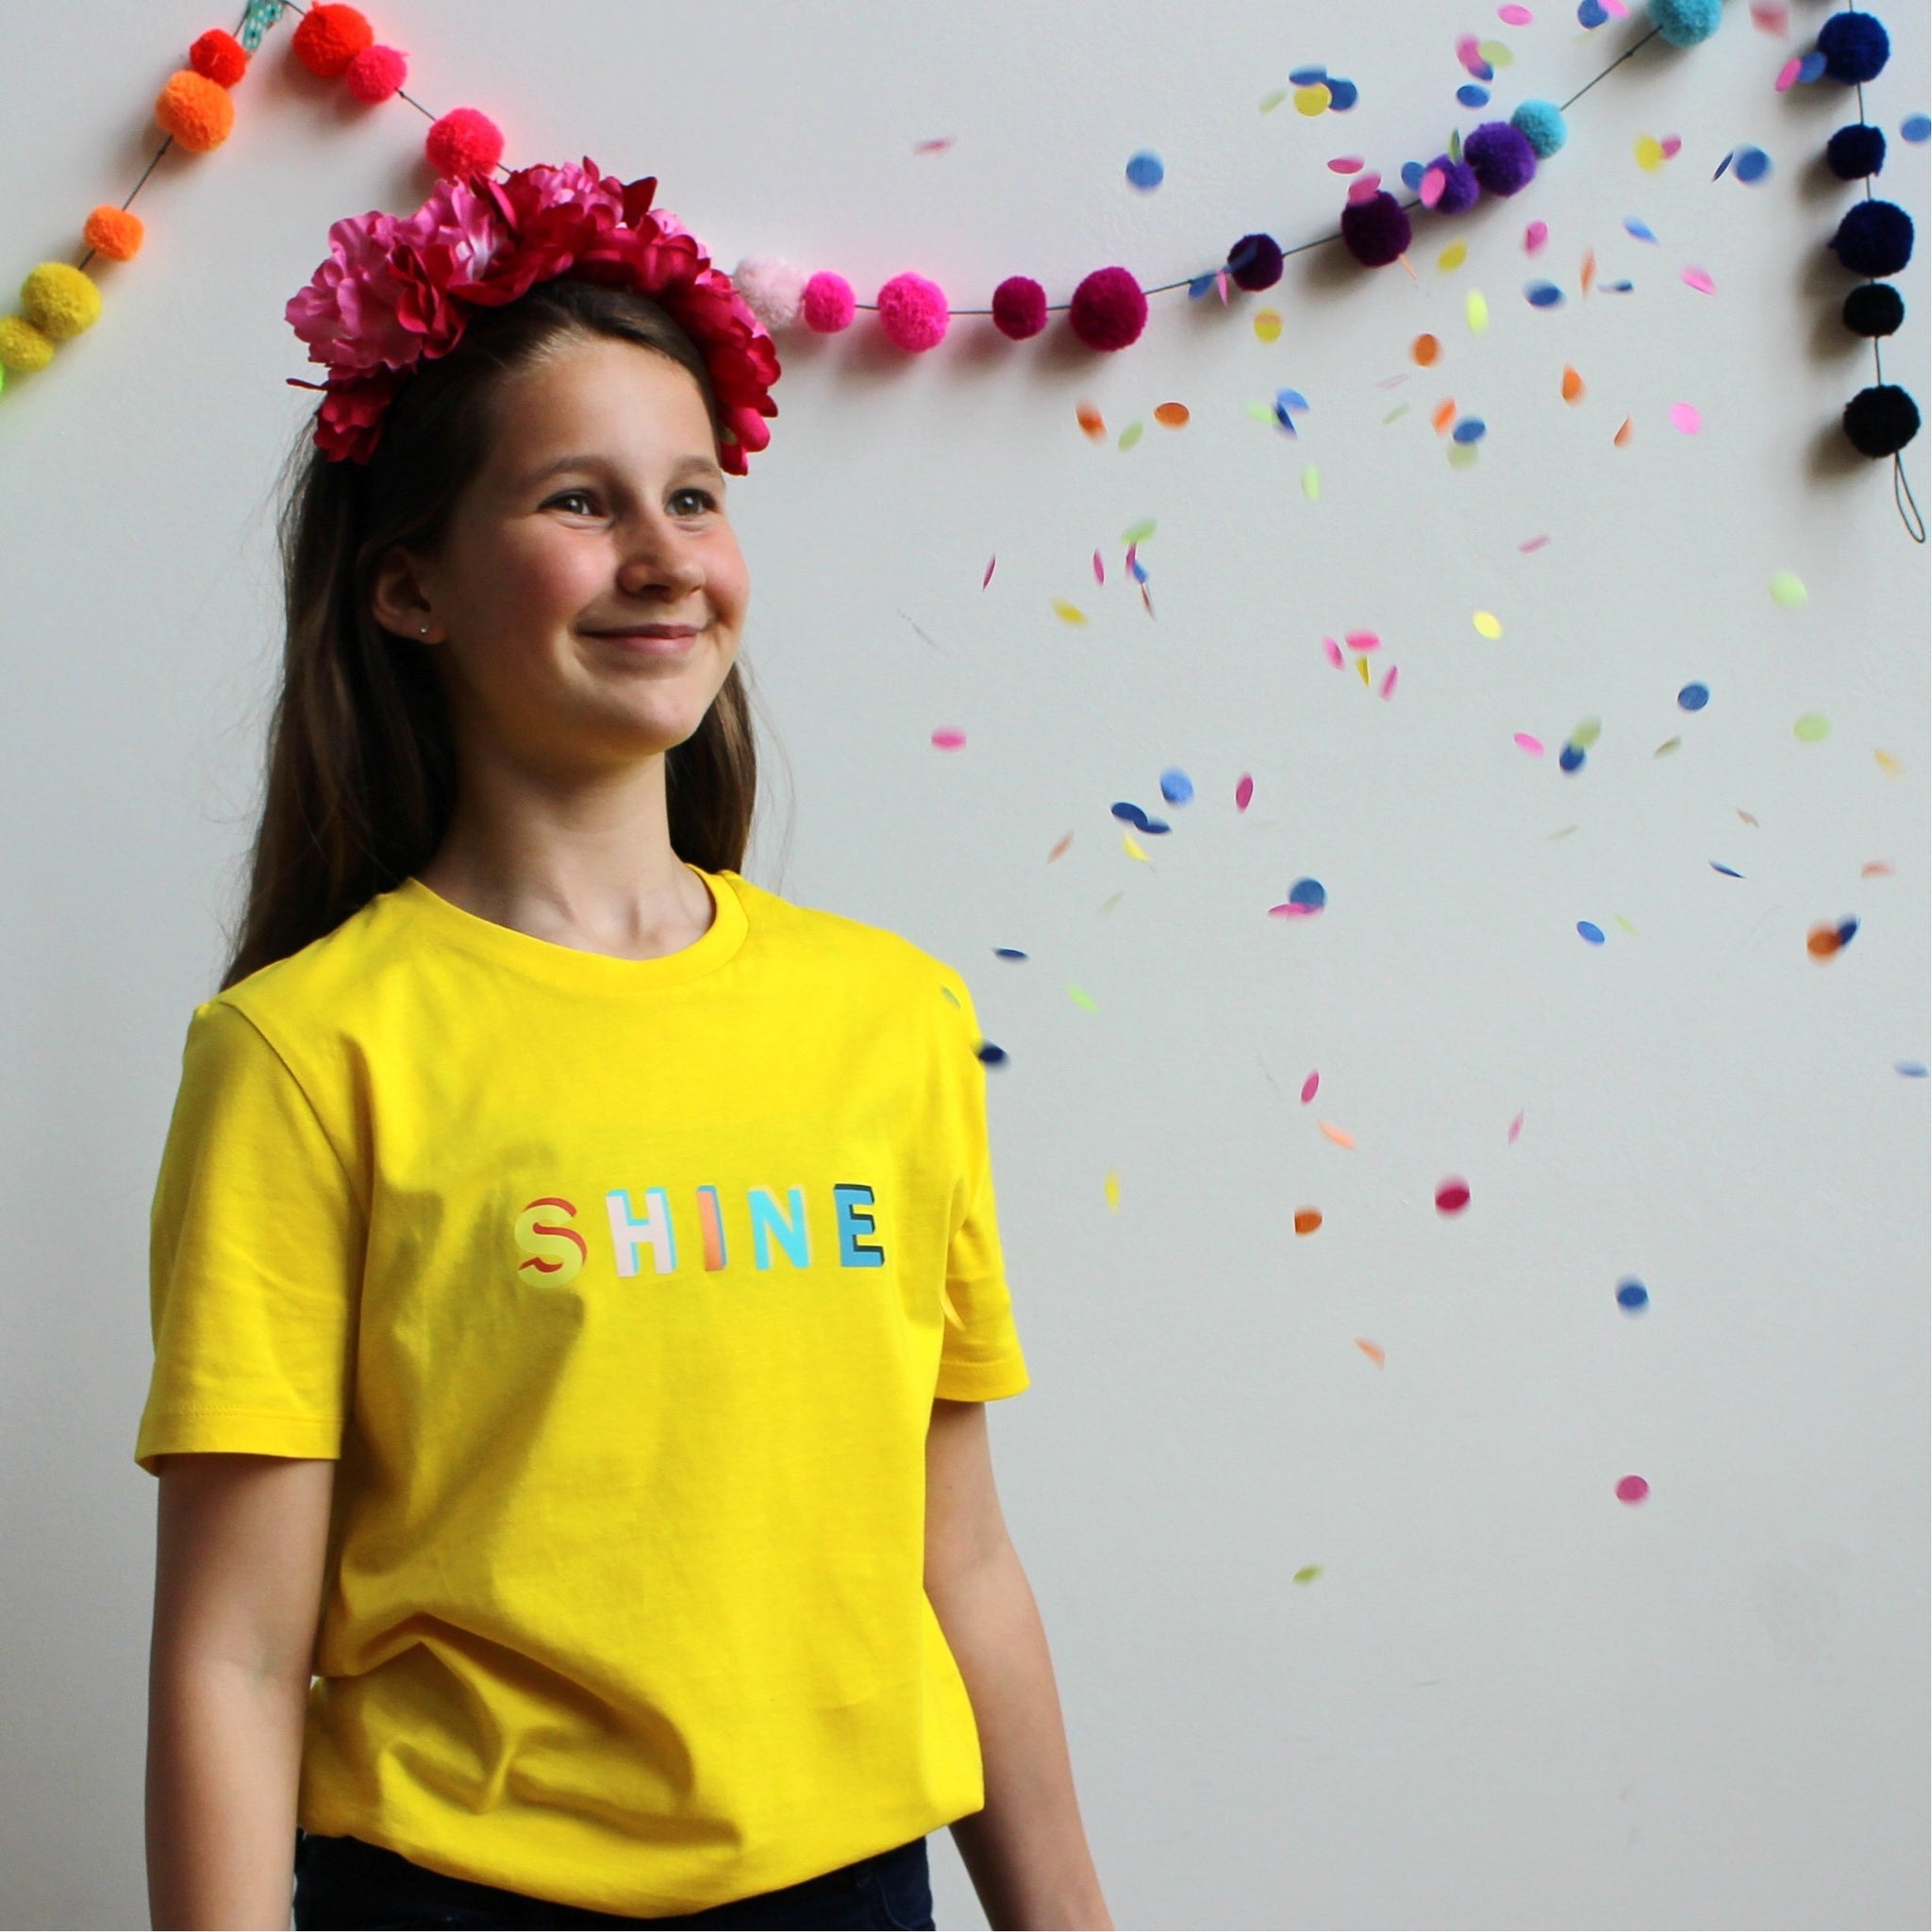 'Shine' Unisex Kids T-shirt